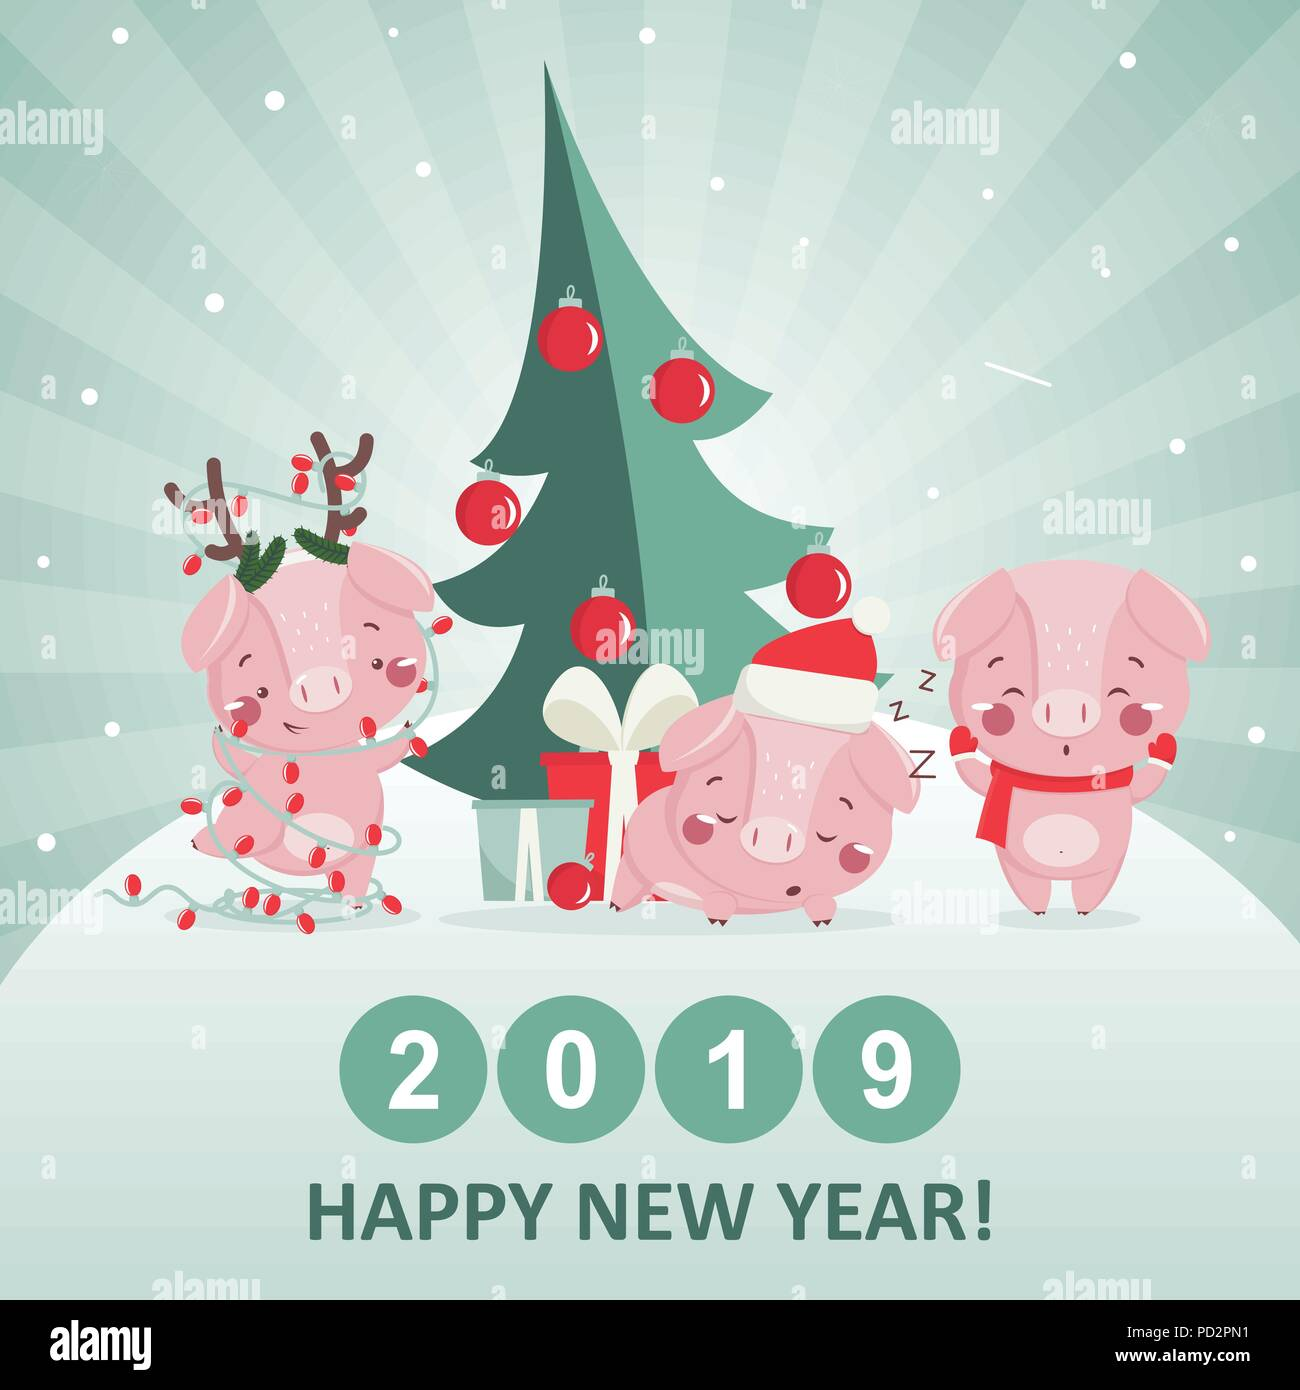 Happy new year greeting card with cute pig. Chinese symbol ...